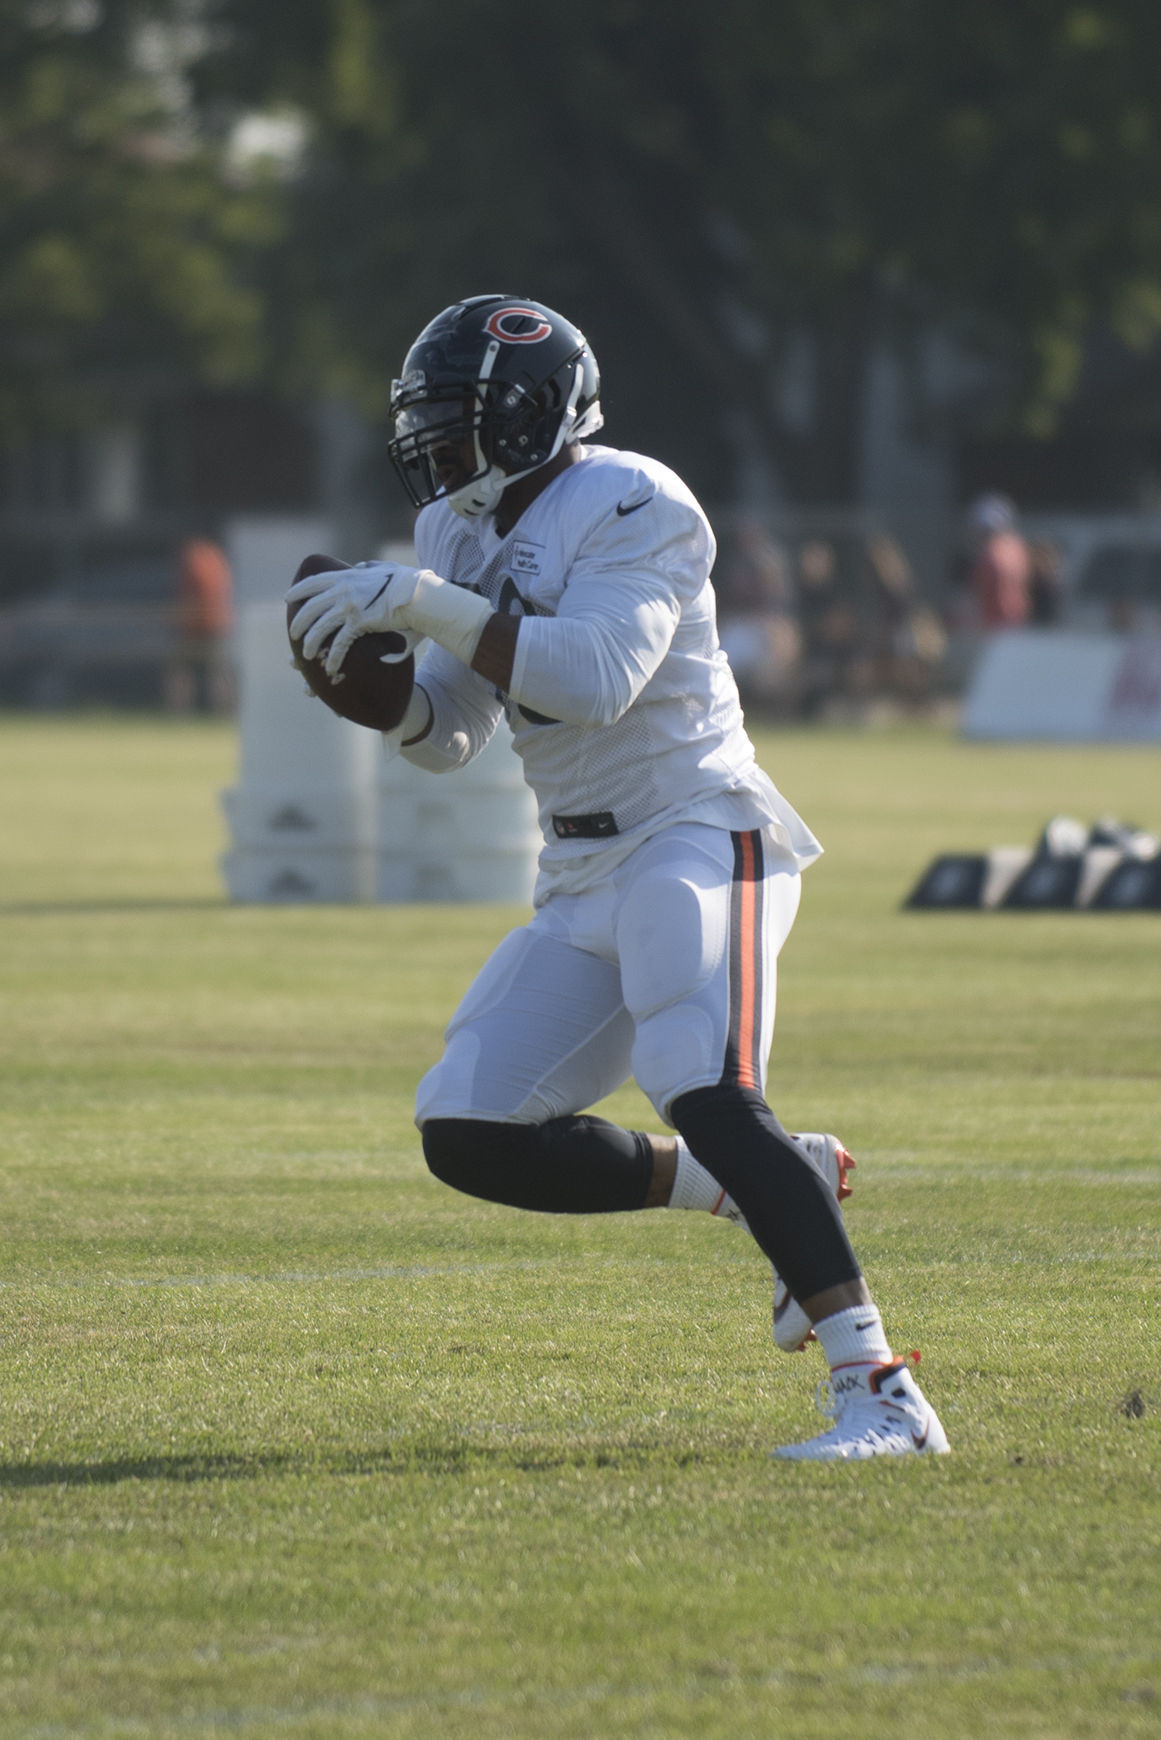 Bears hold first padded practice Sunday